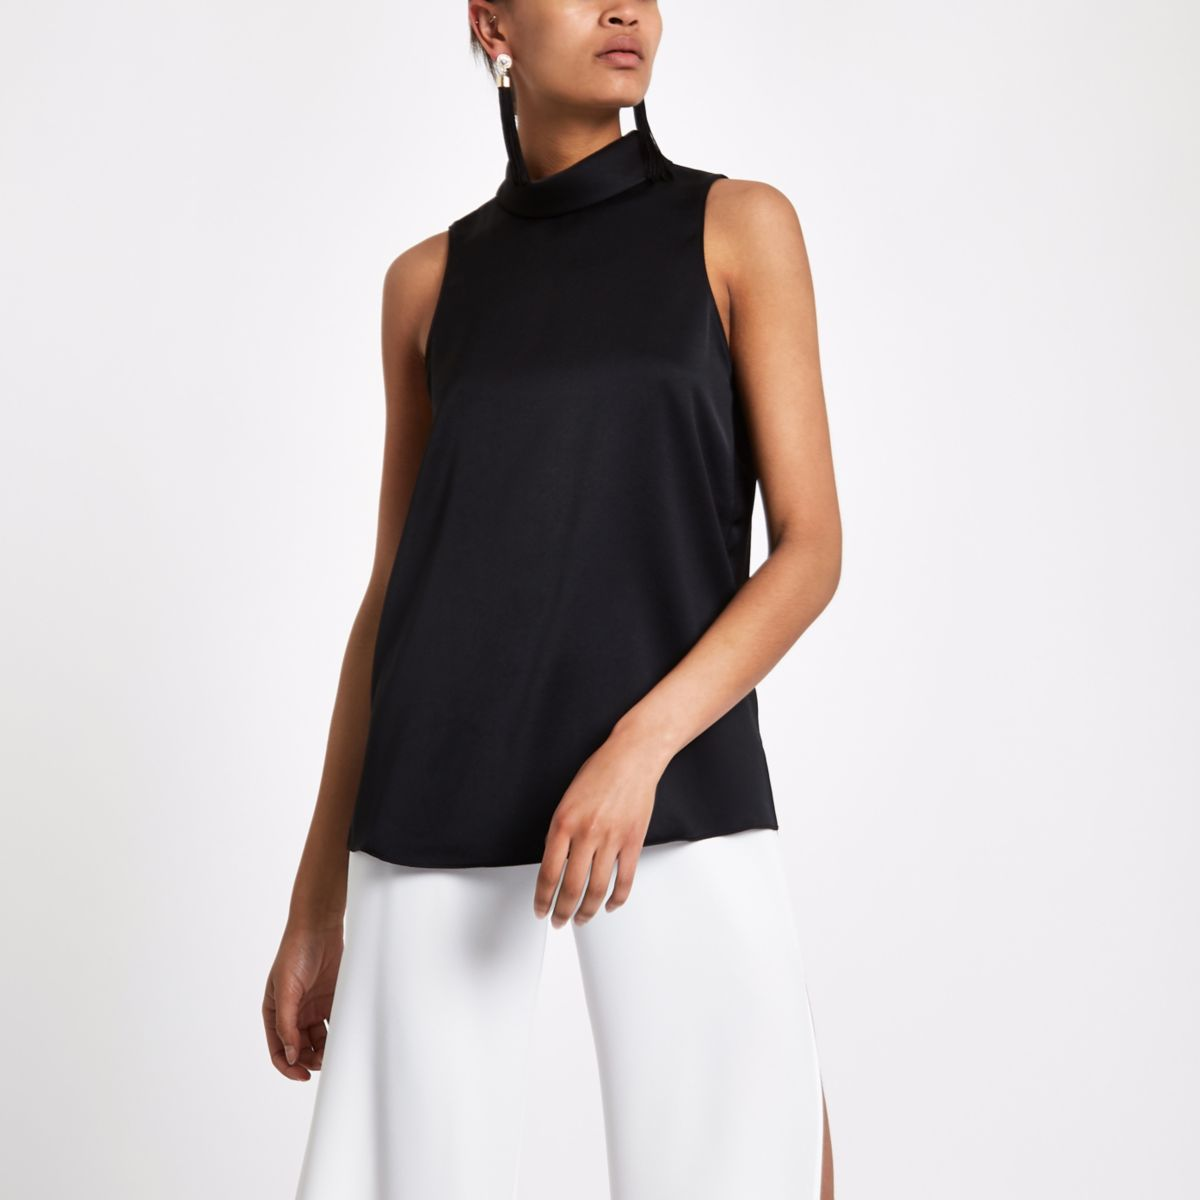 Black sleeveless roll neck top